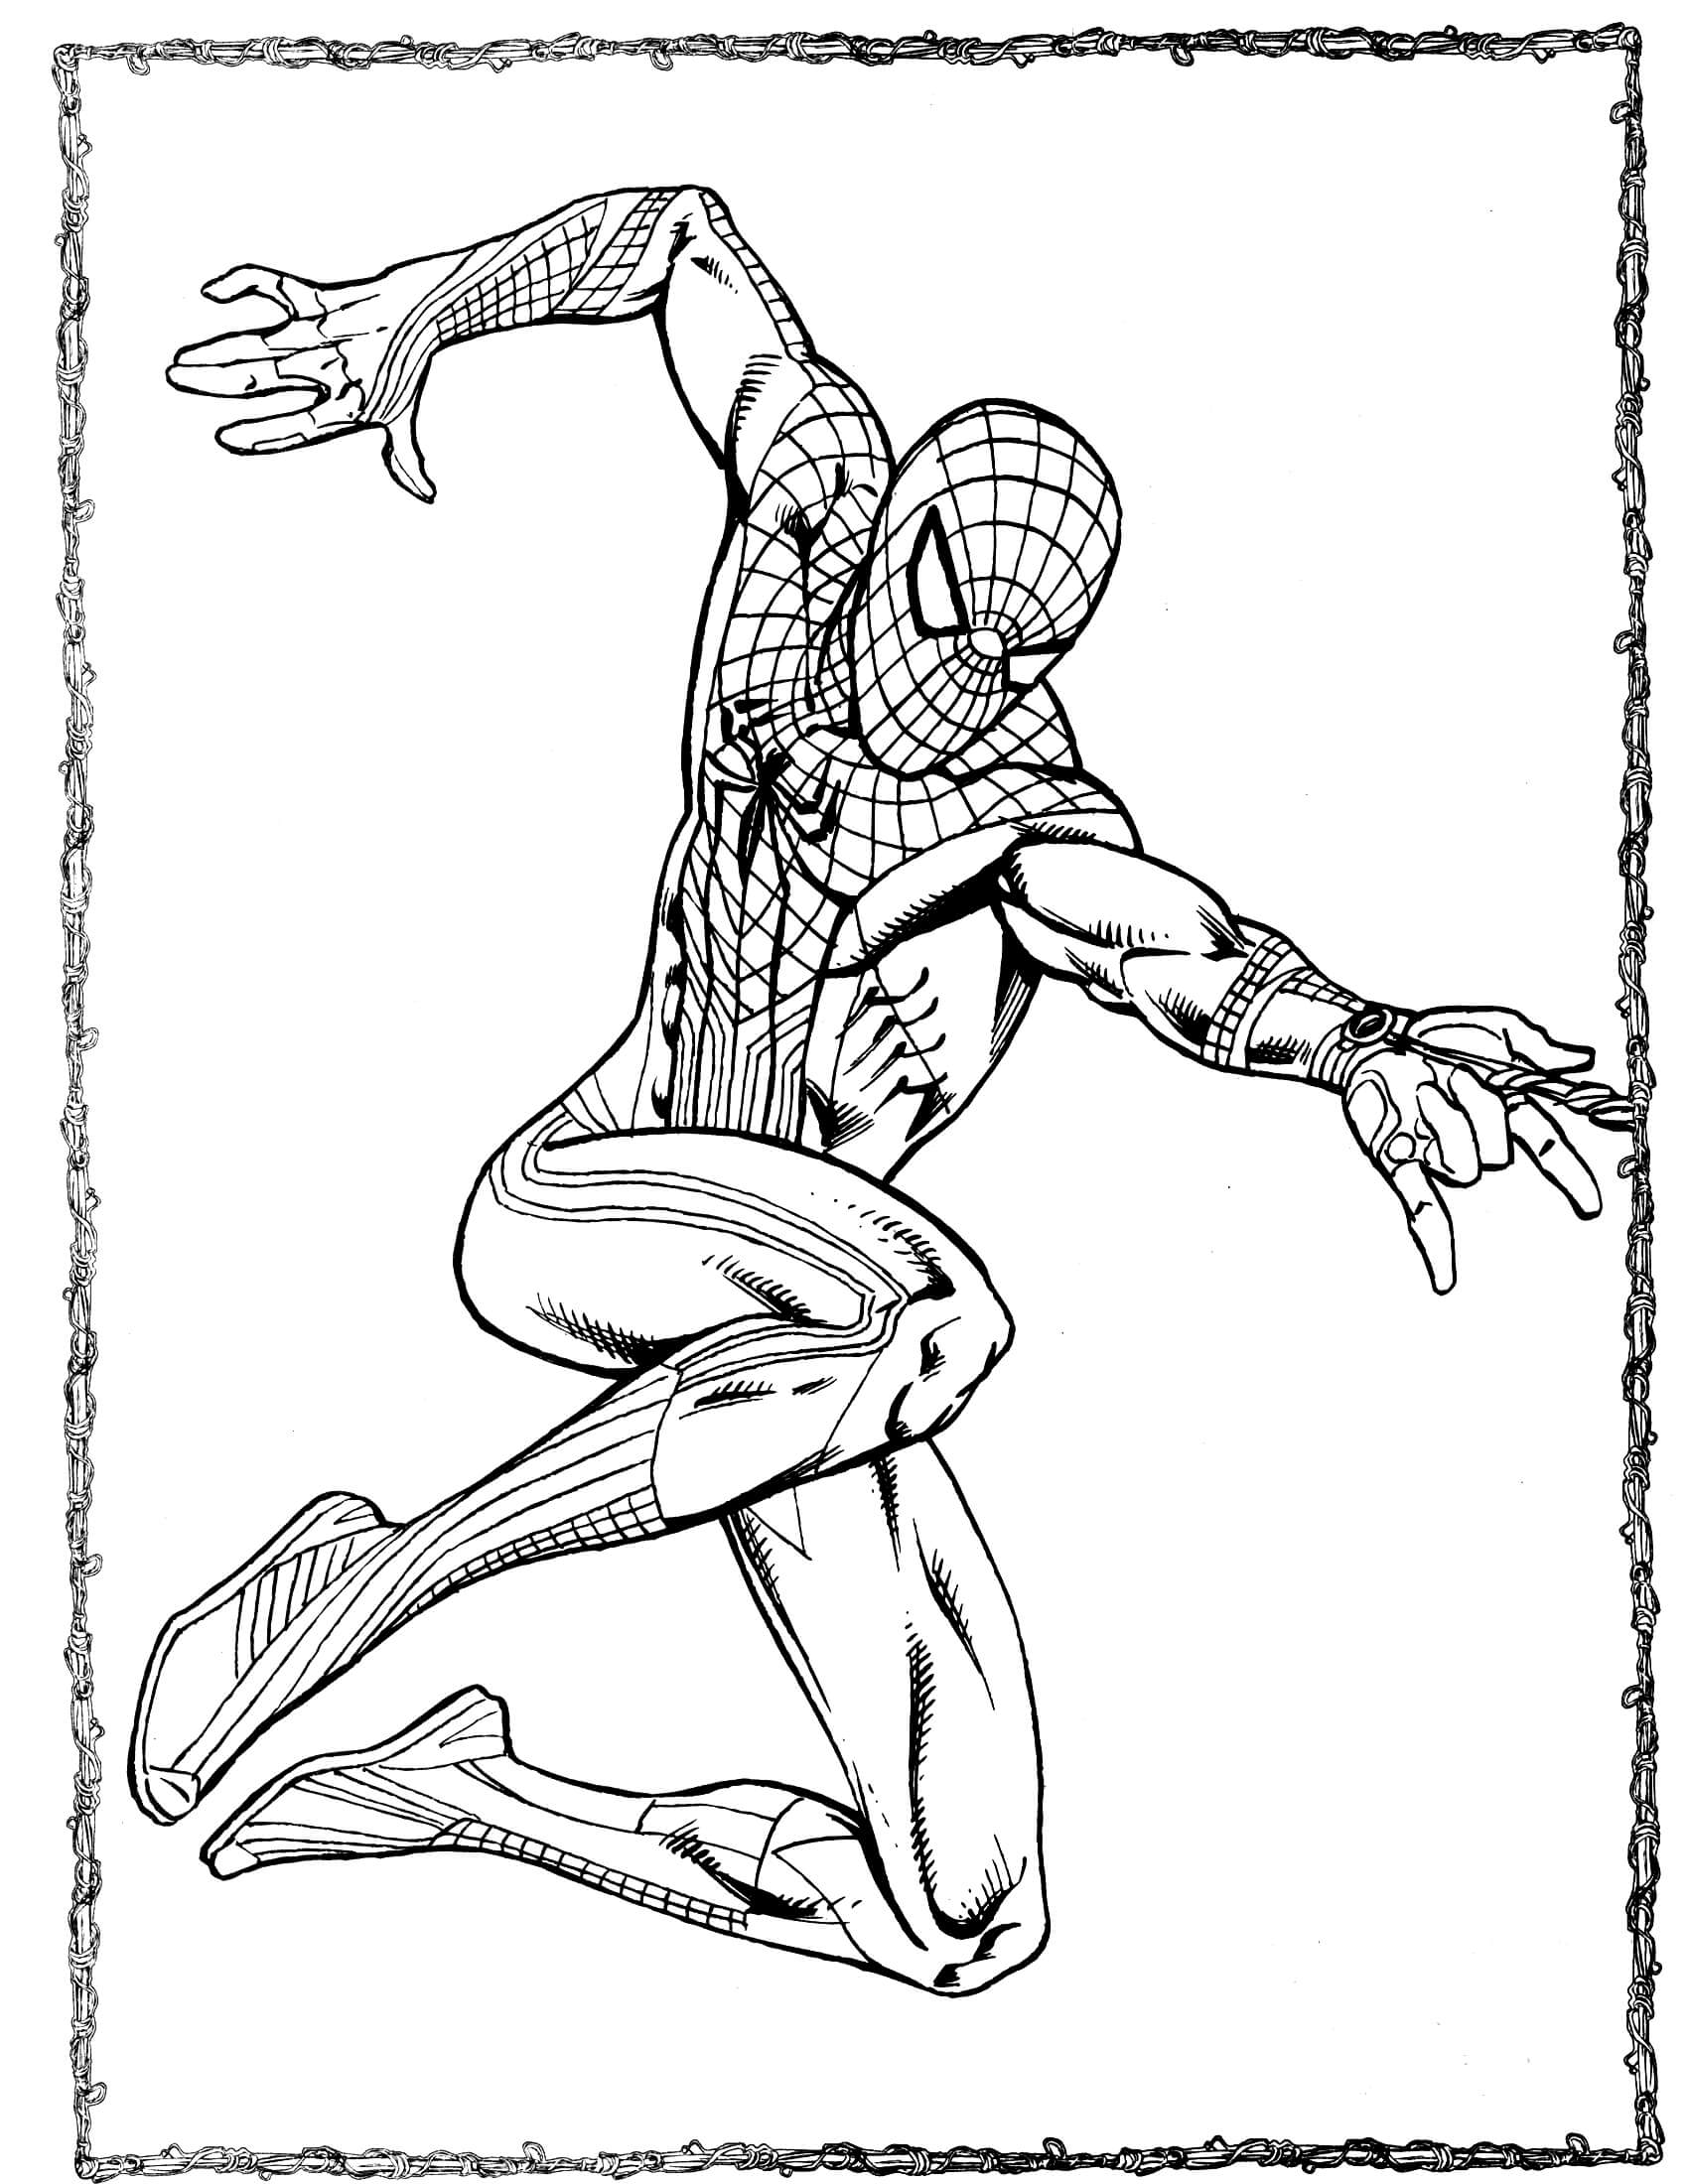 spiderman car coloring pages spiderman driving motorcycle coloring page free car coloring pages spiderman